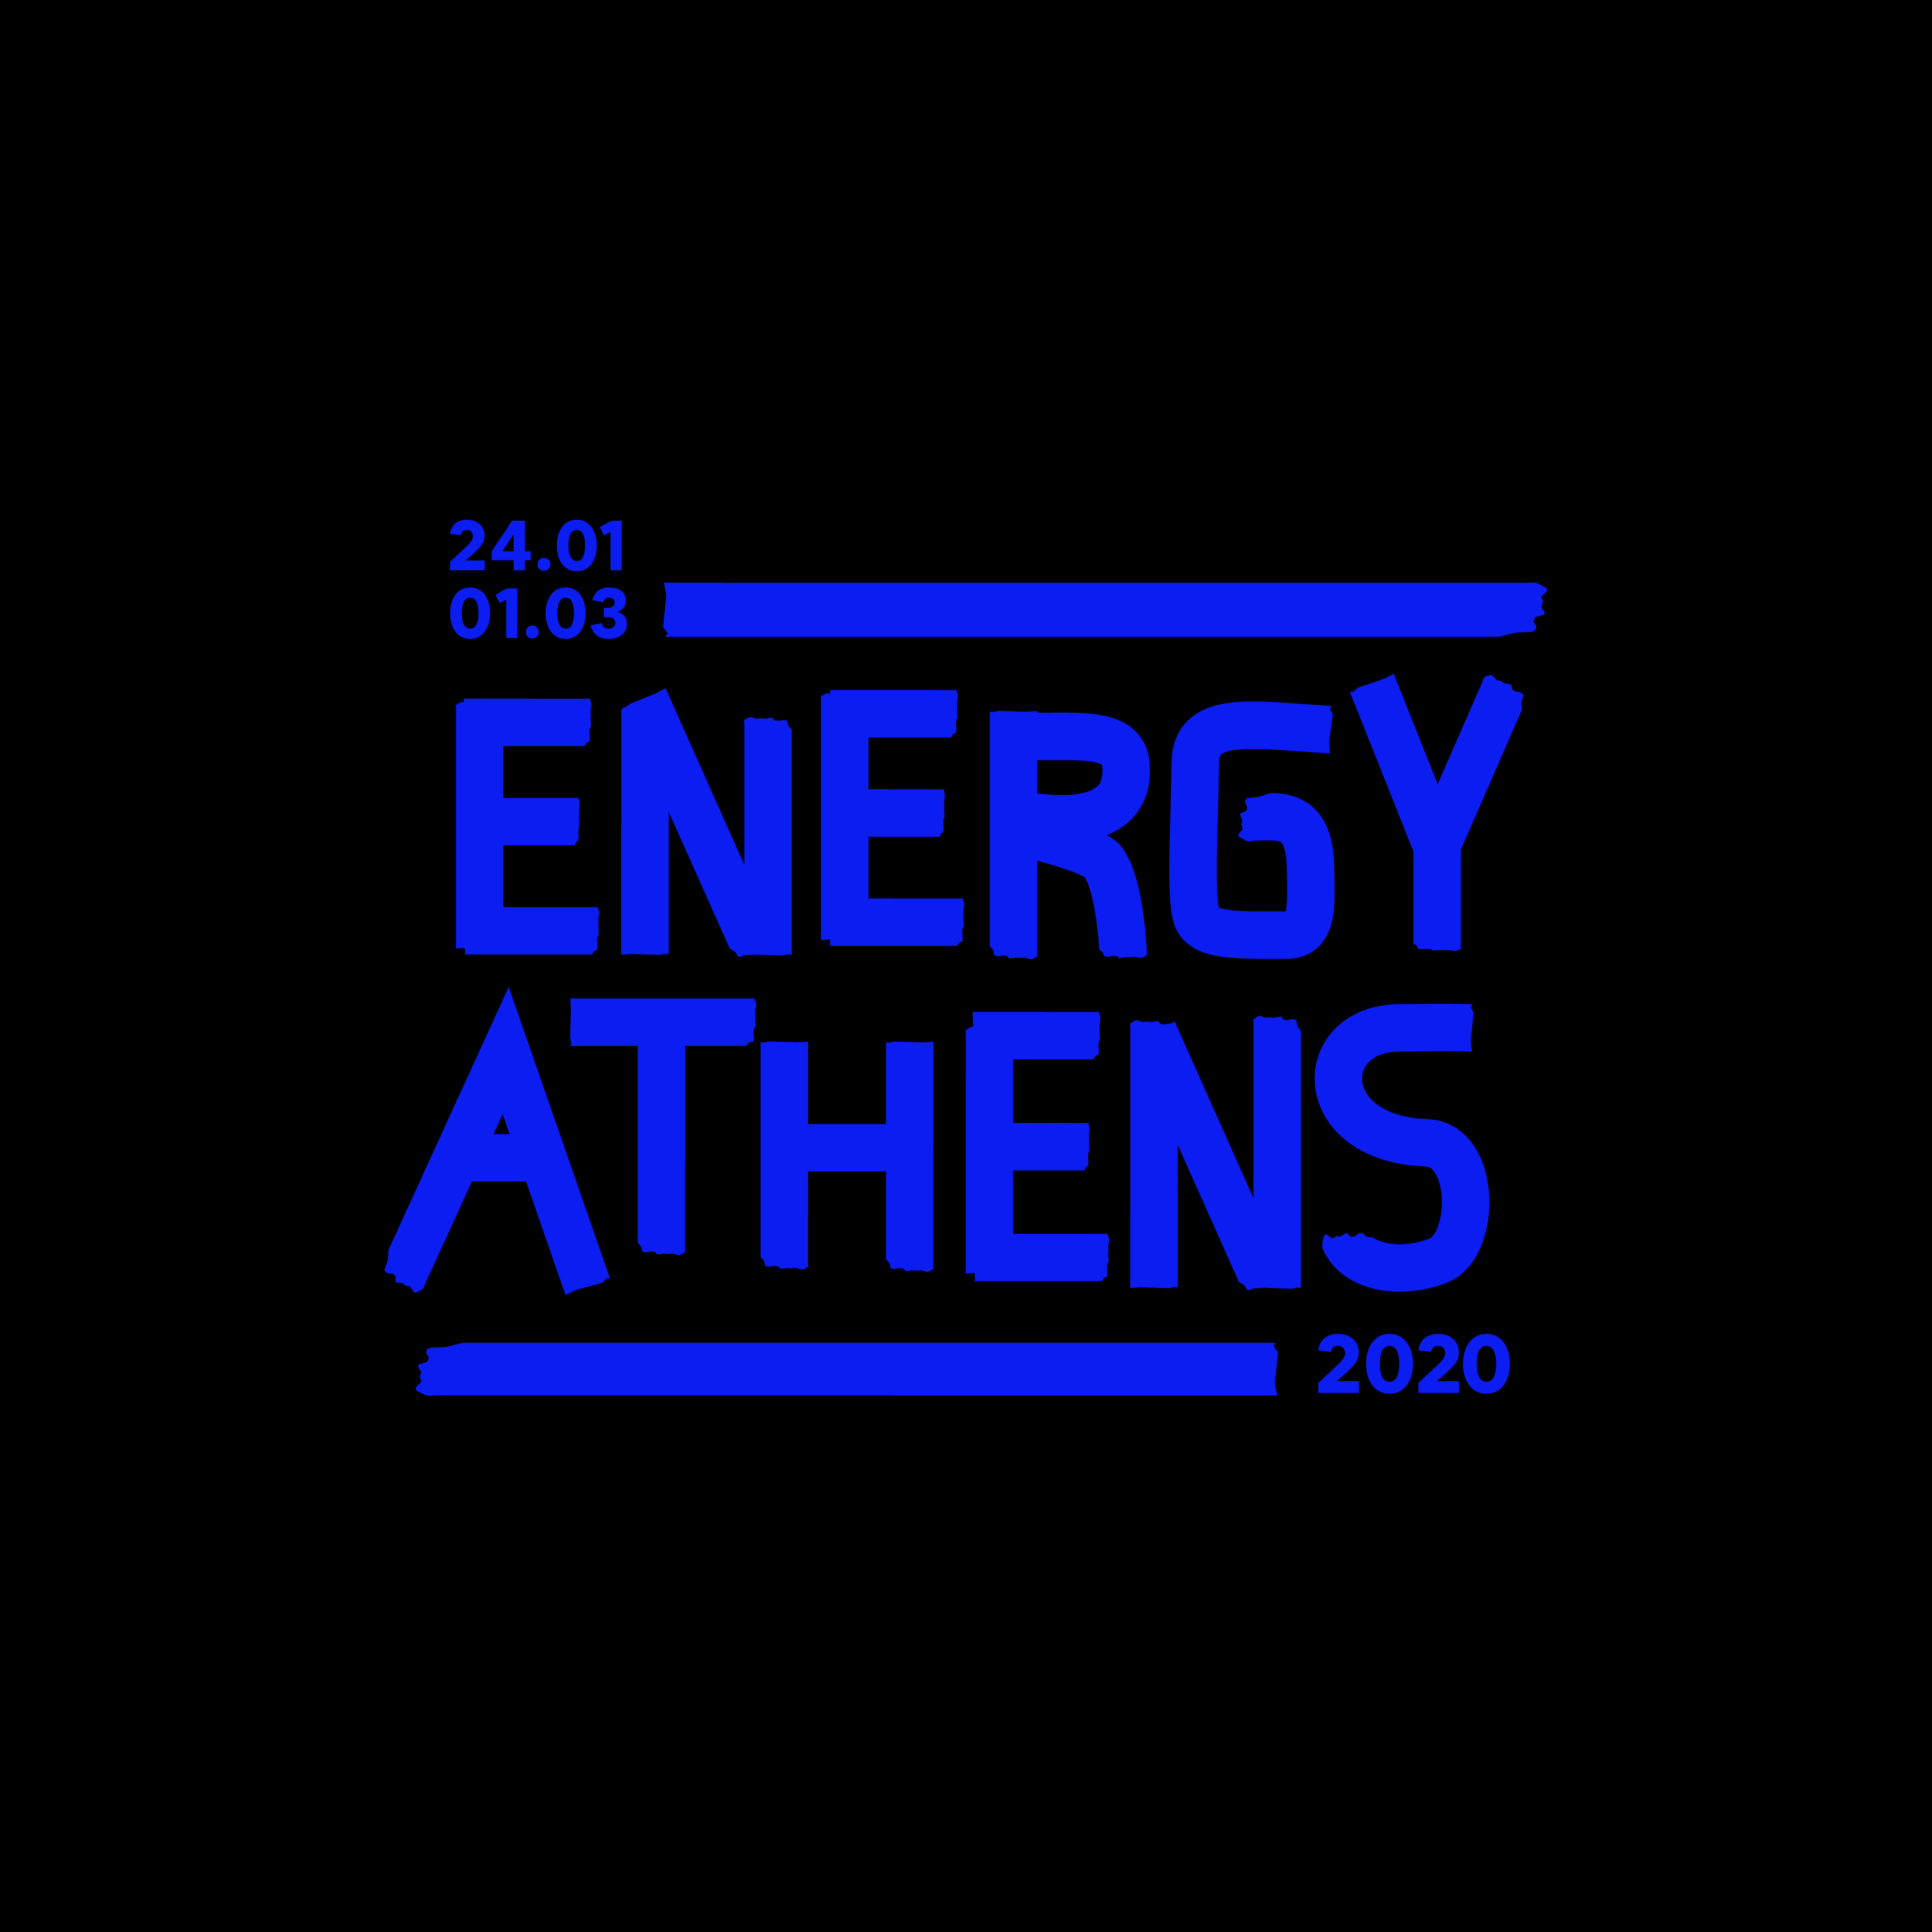 post_energyathens_2020-04